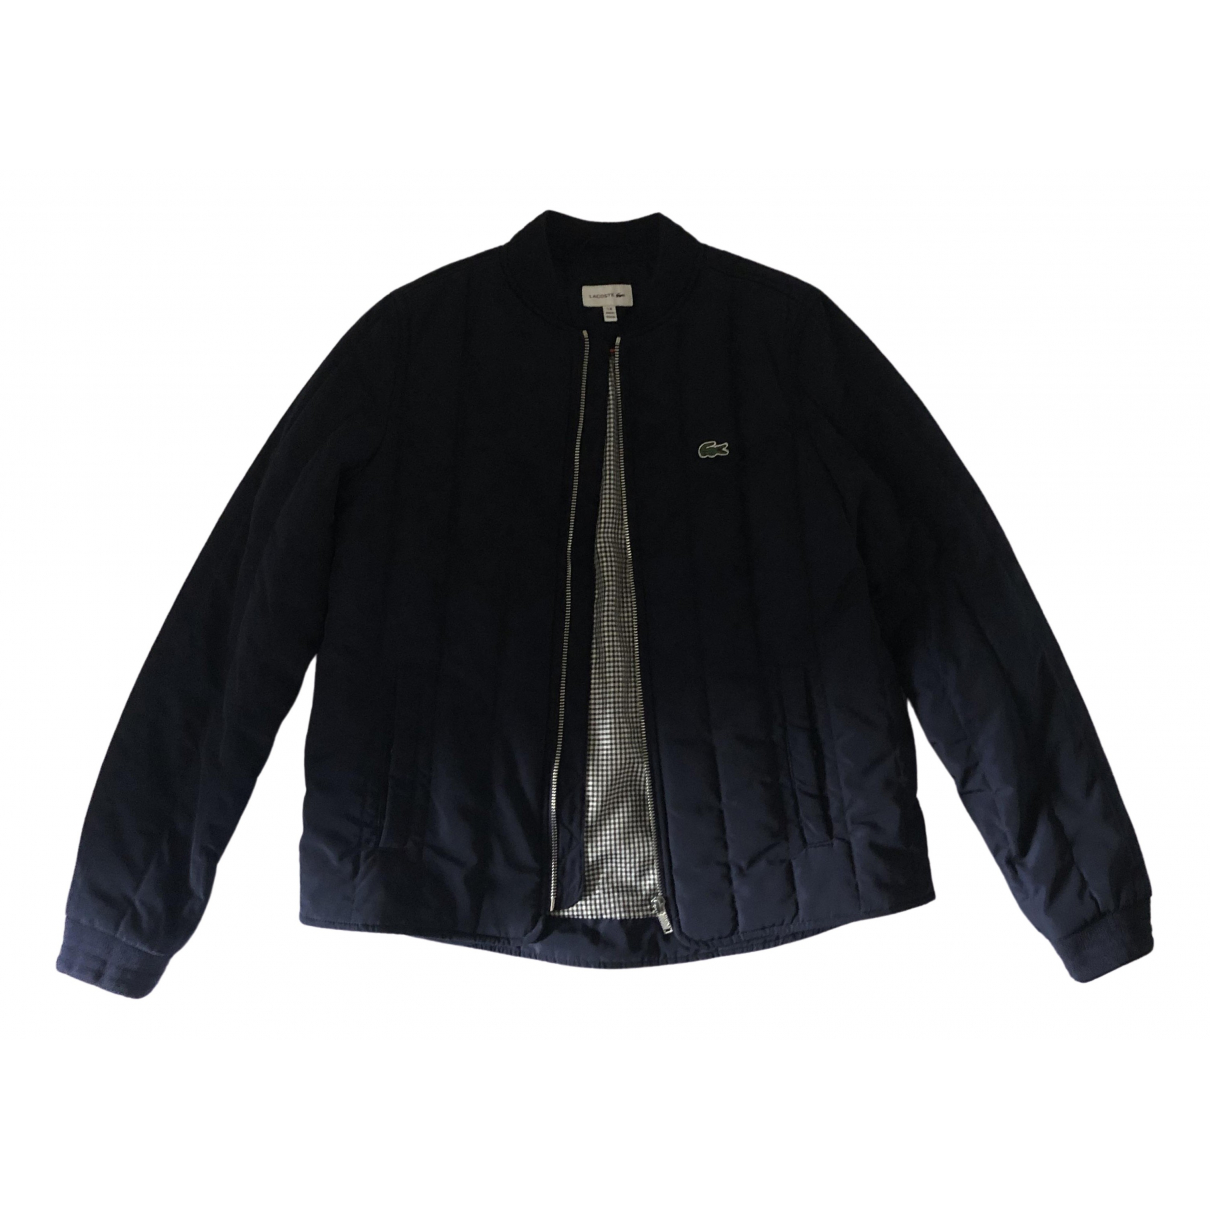 Lacoste \N Navy jacket & coat for Kids 14 years - S FR